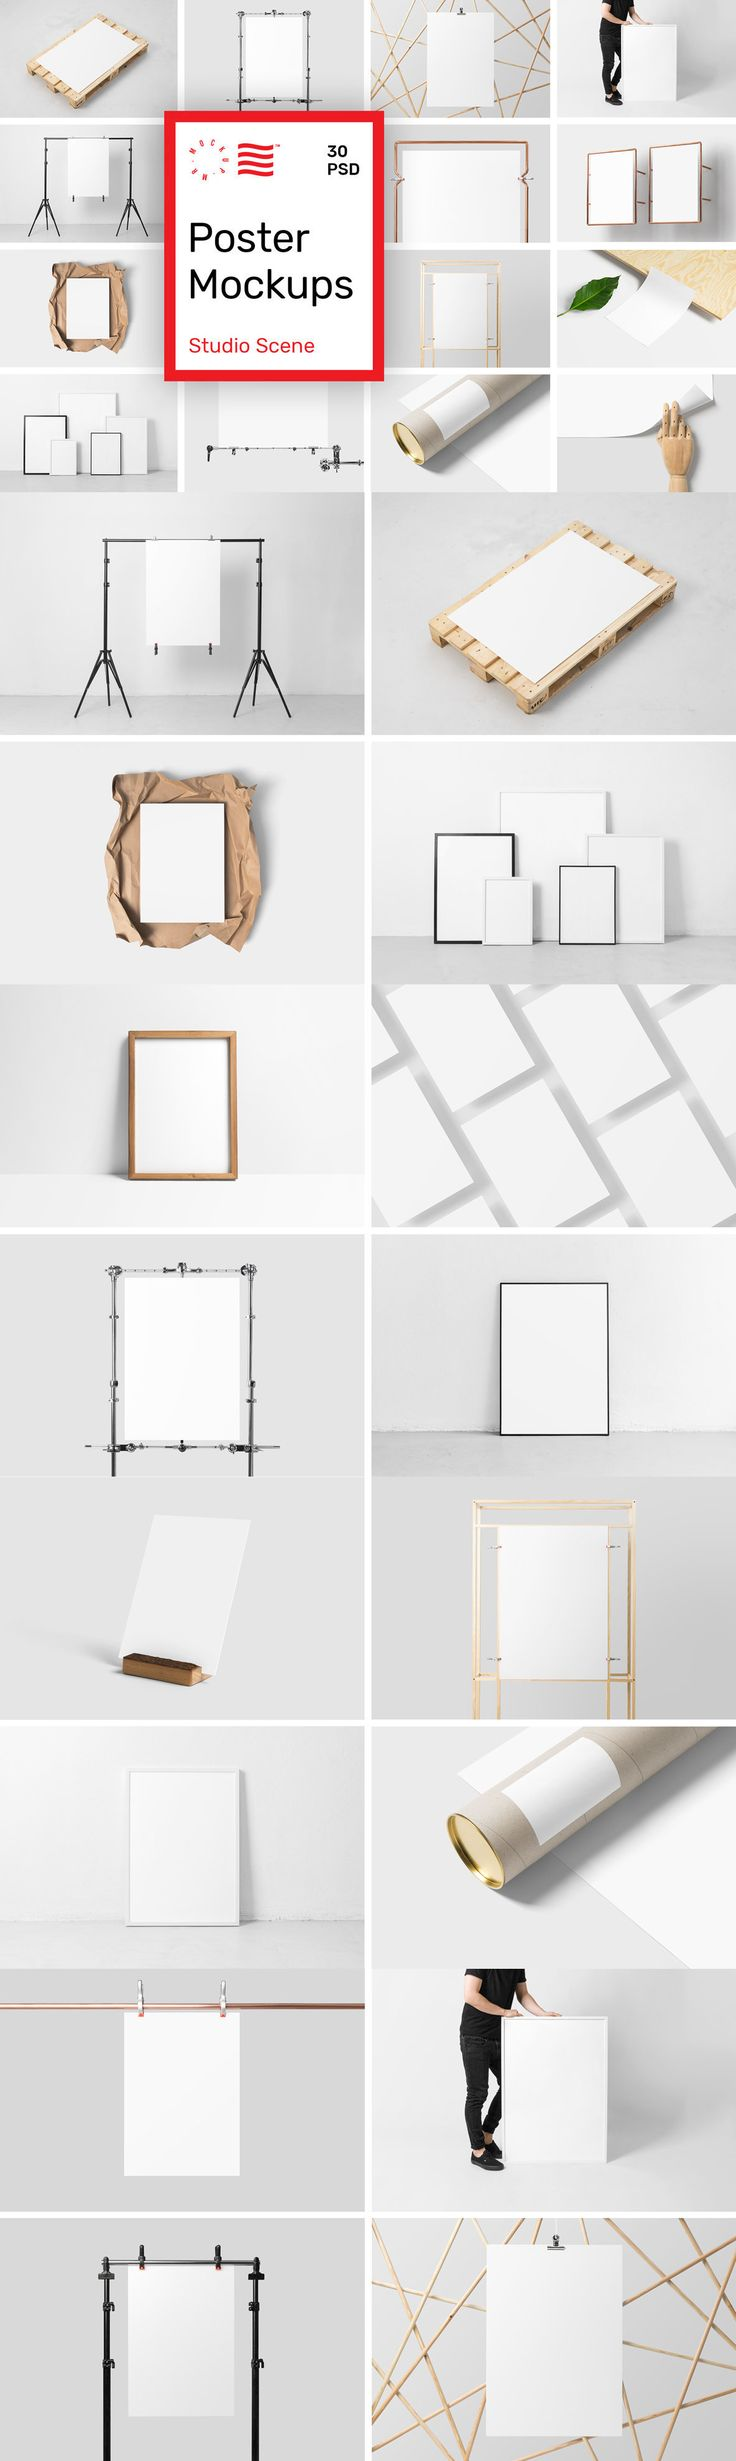 Poster Mockups - Studio Scene - Collection of 30 PSD Poster Mockups that will help you showcase your work i...